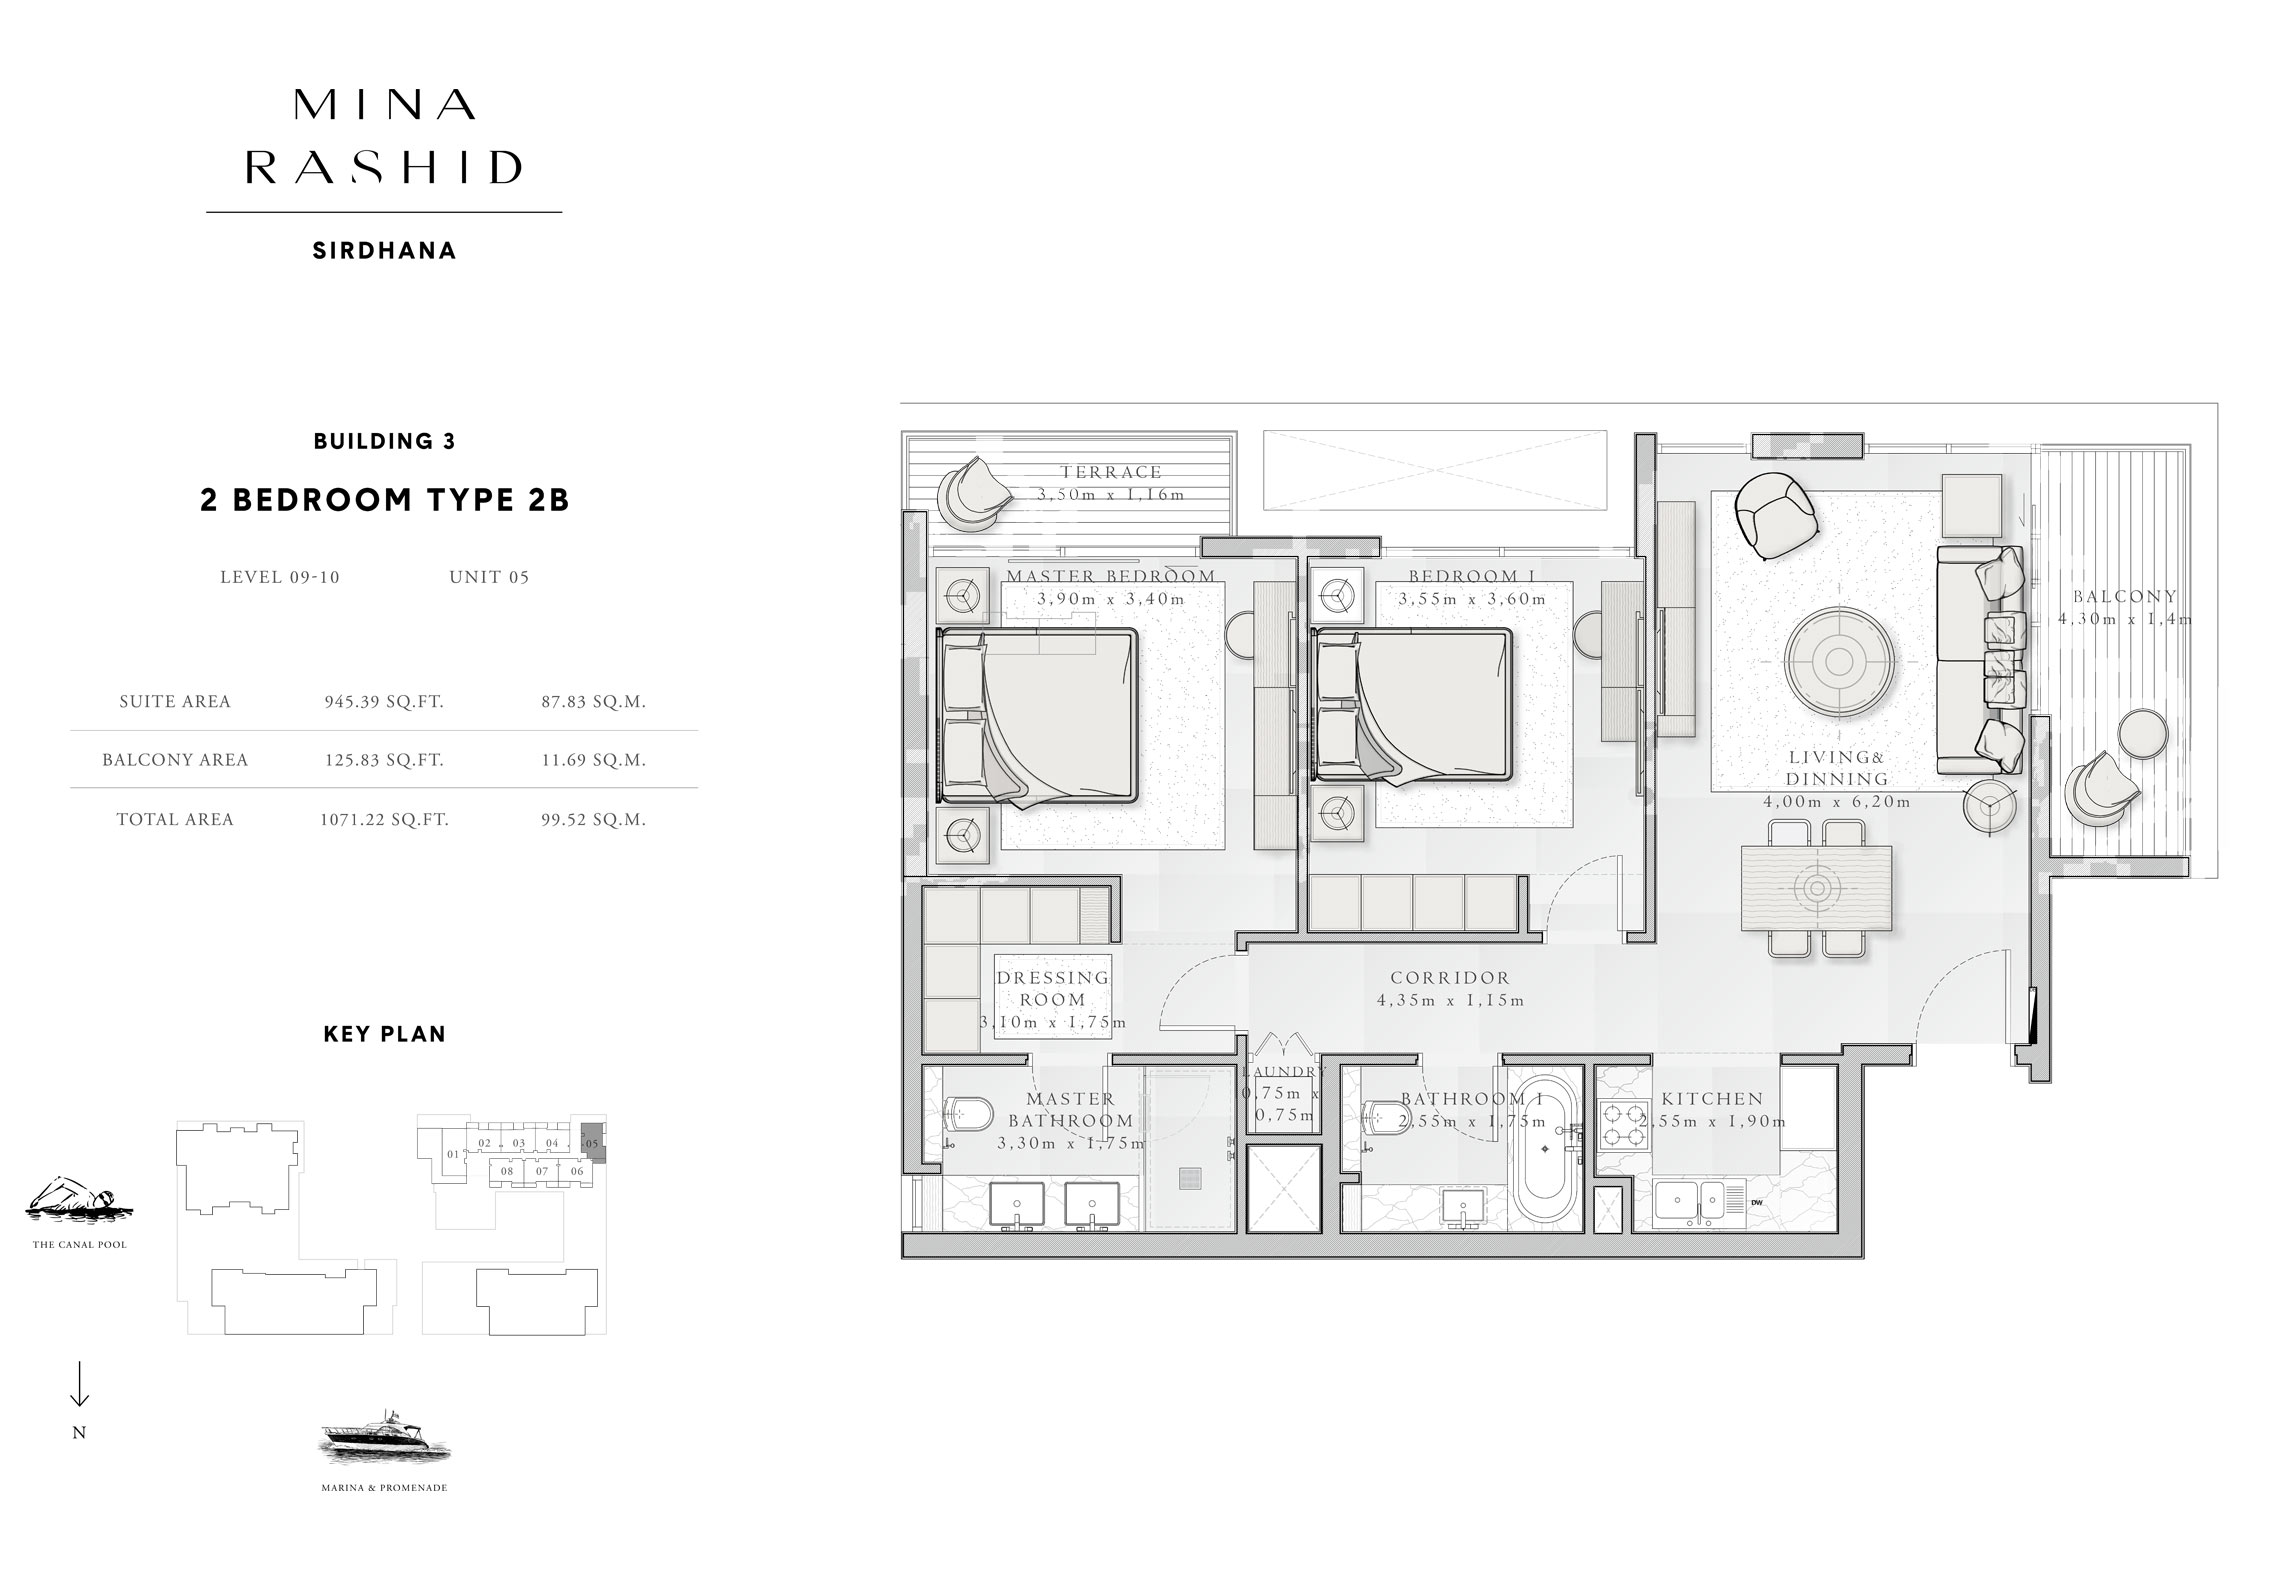 2-Bedroom-Type-2 B, Building-3, Level-9 to 10, Size-1071-Sq-Ft